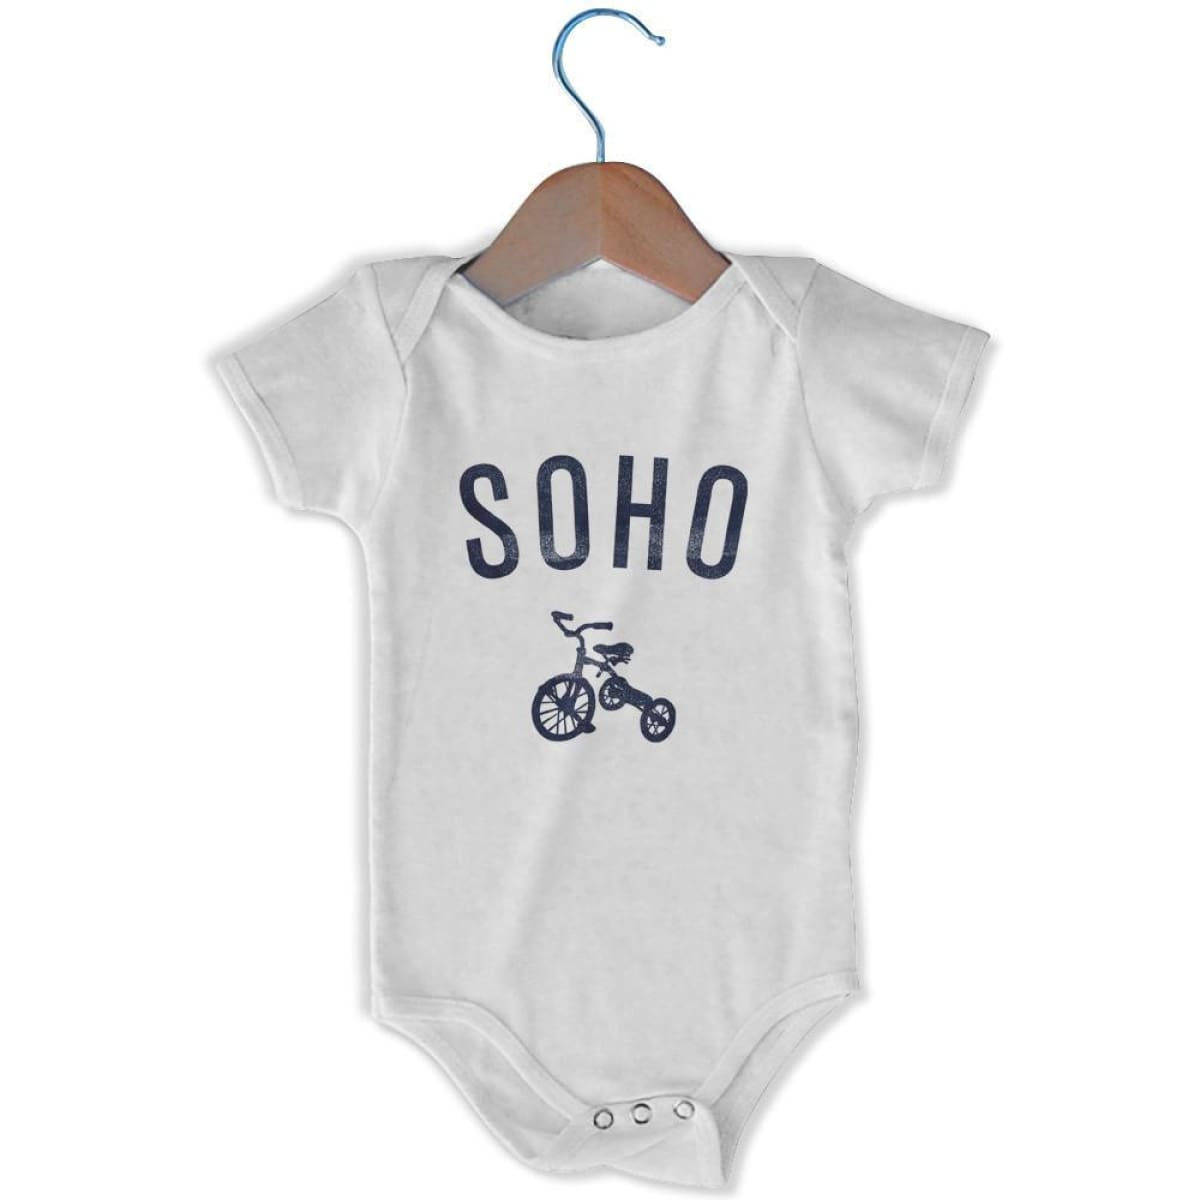 Soho City Tricycle Infant Onesie - White / 6 - 9 Months - Mile End City